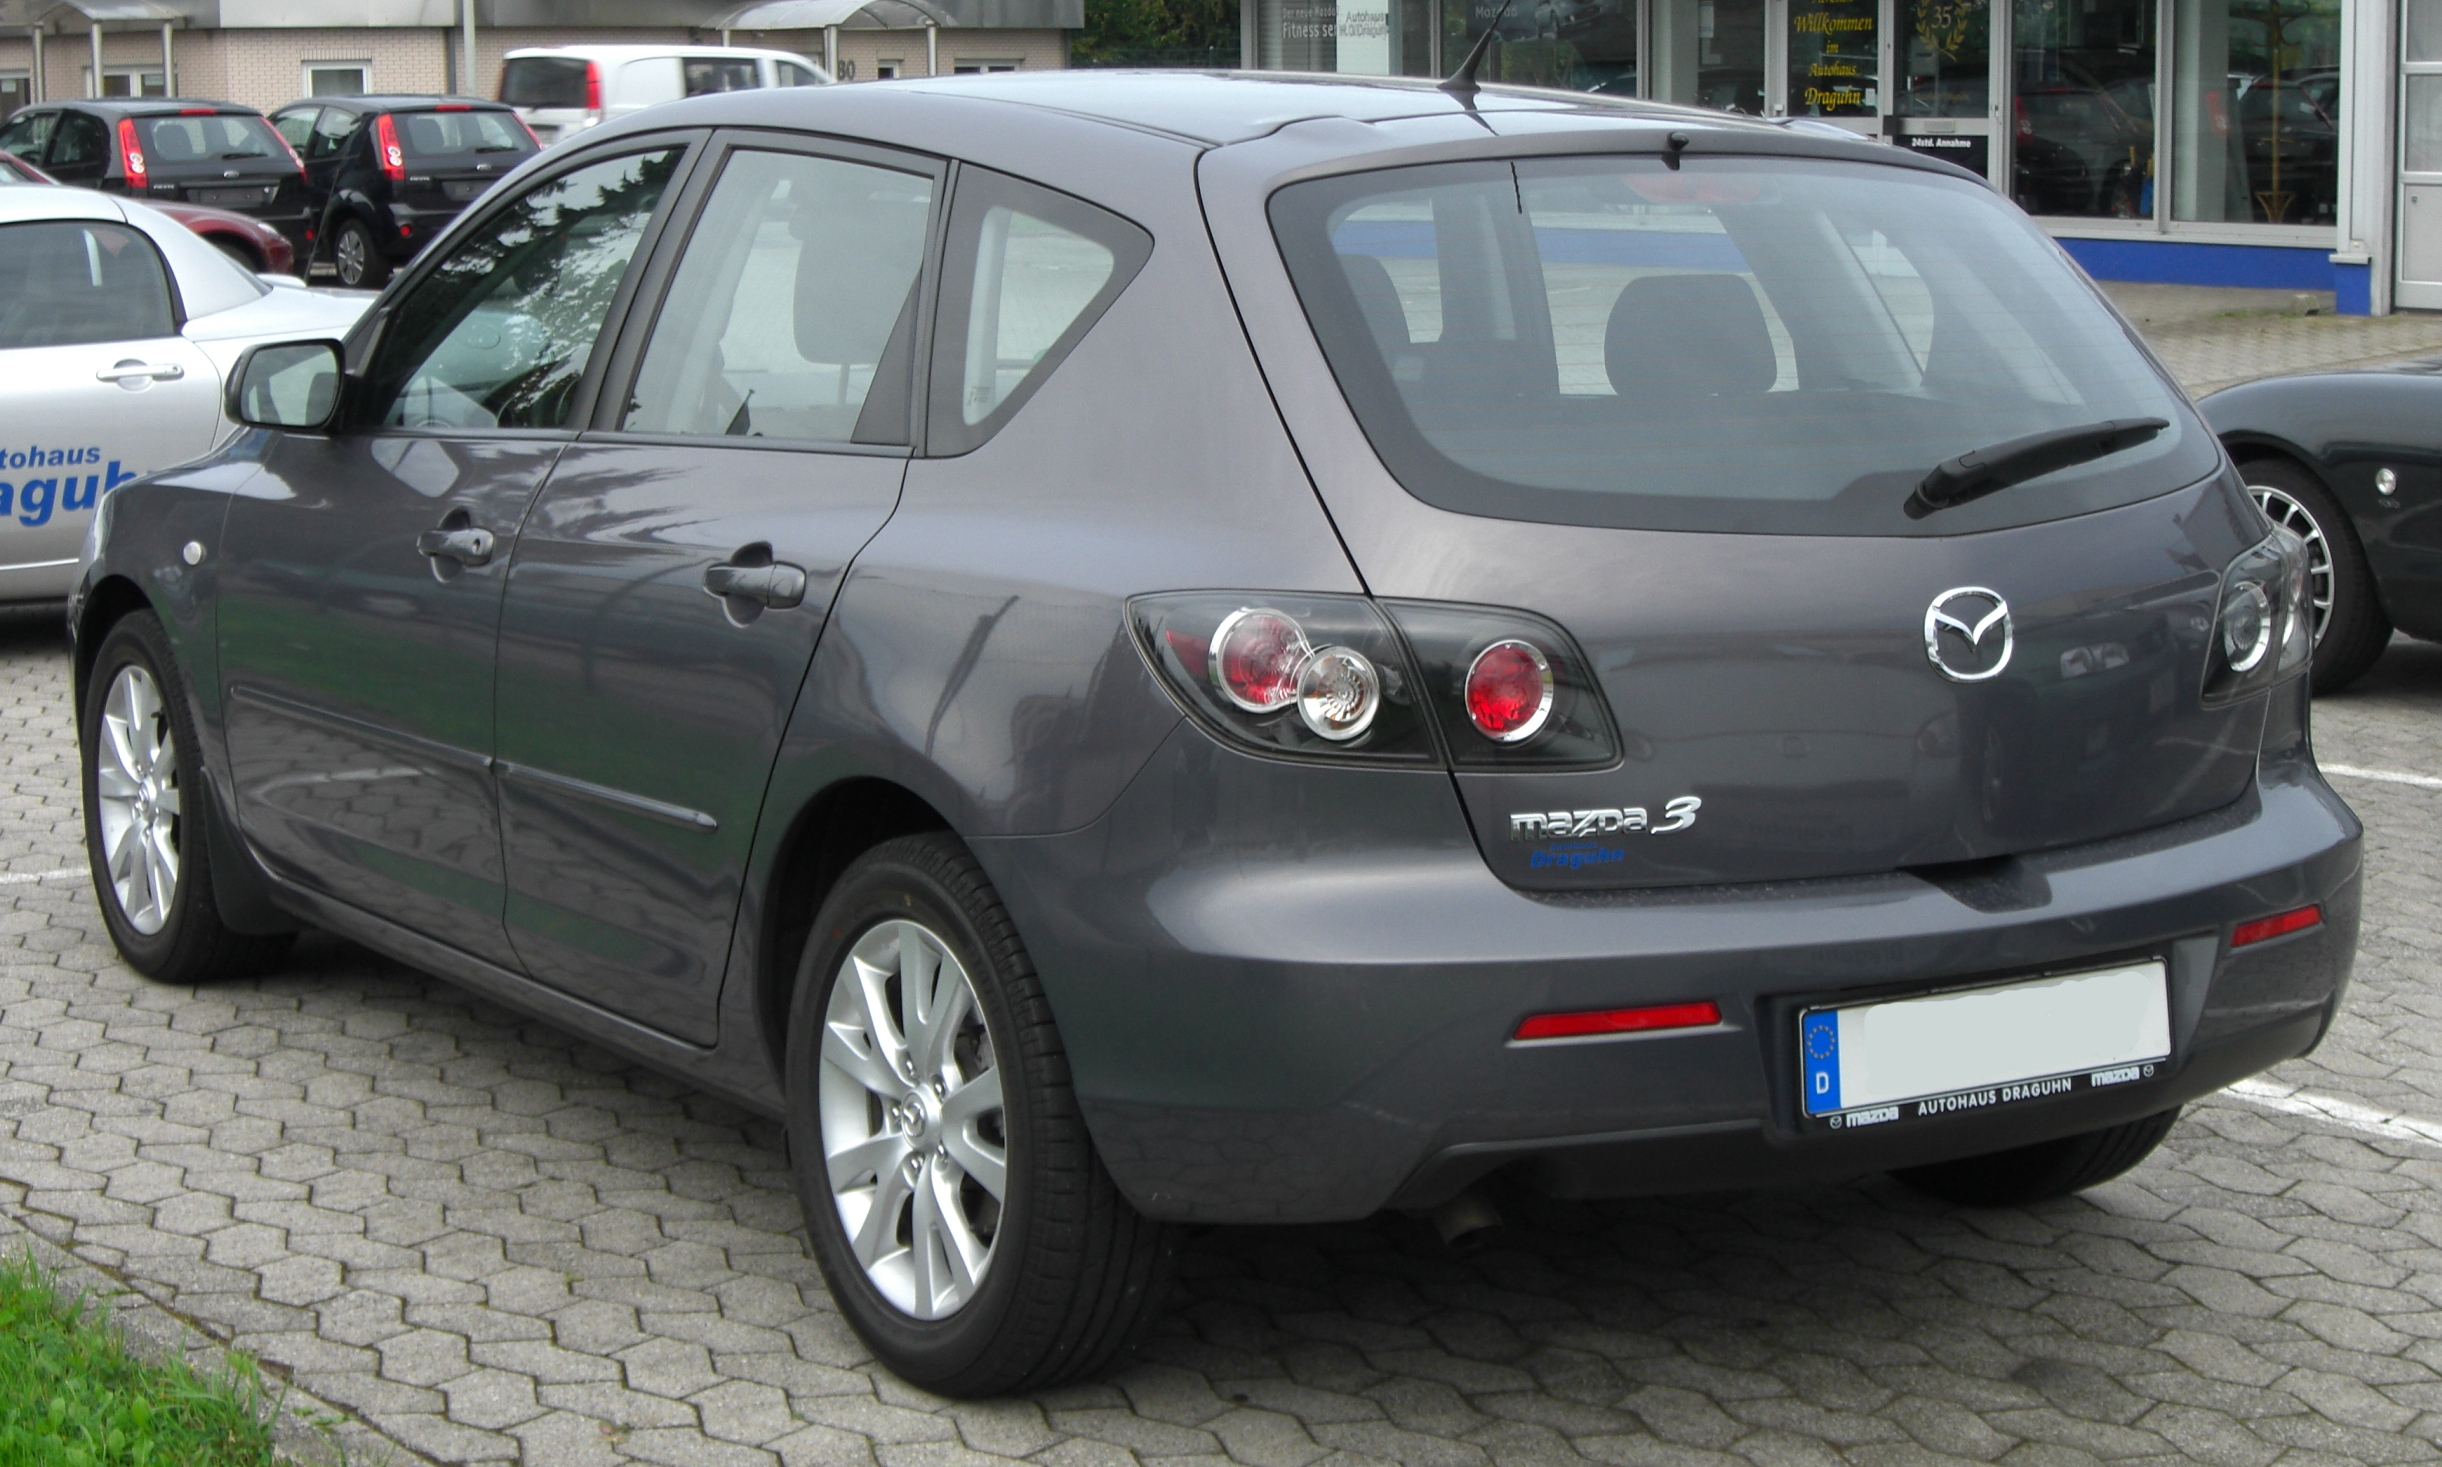 https://upload.wikimedia.org/wikipedia/commons/5/5a/Mazda_3_Facelift_rear.JPG